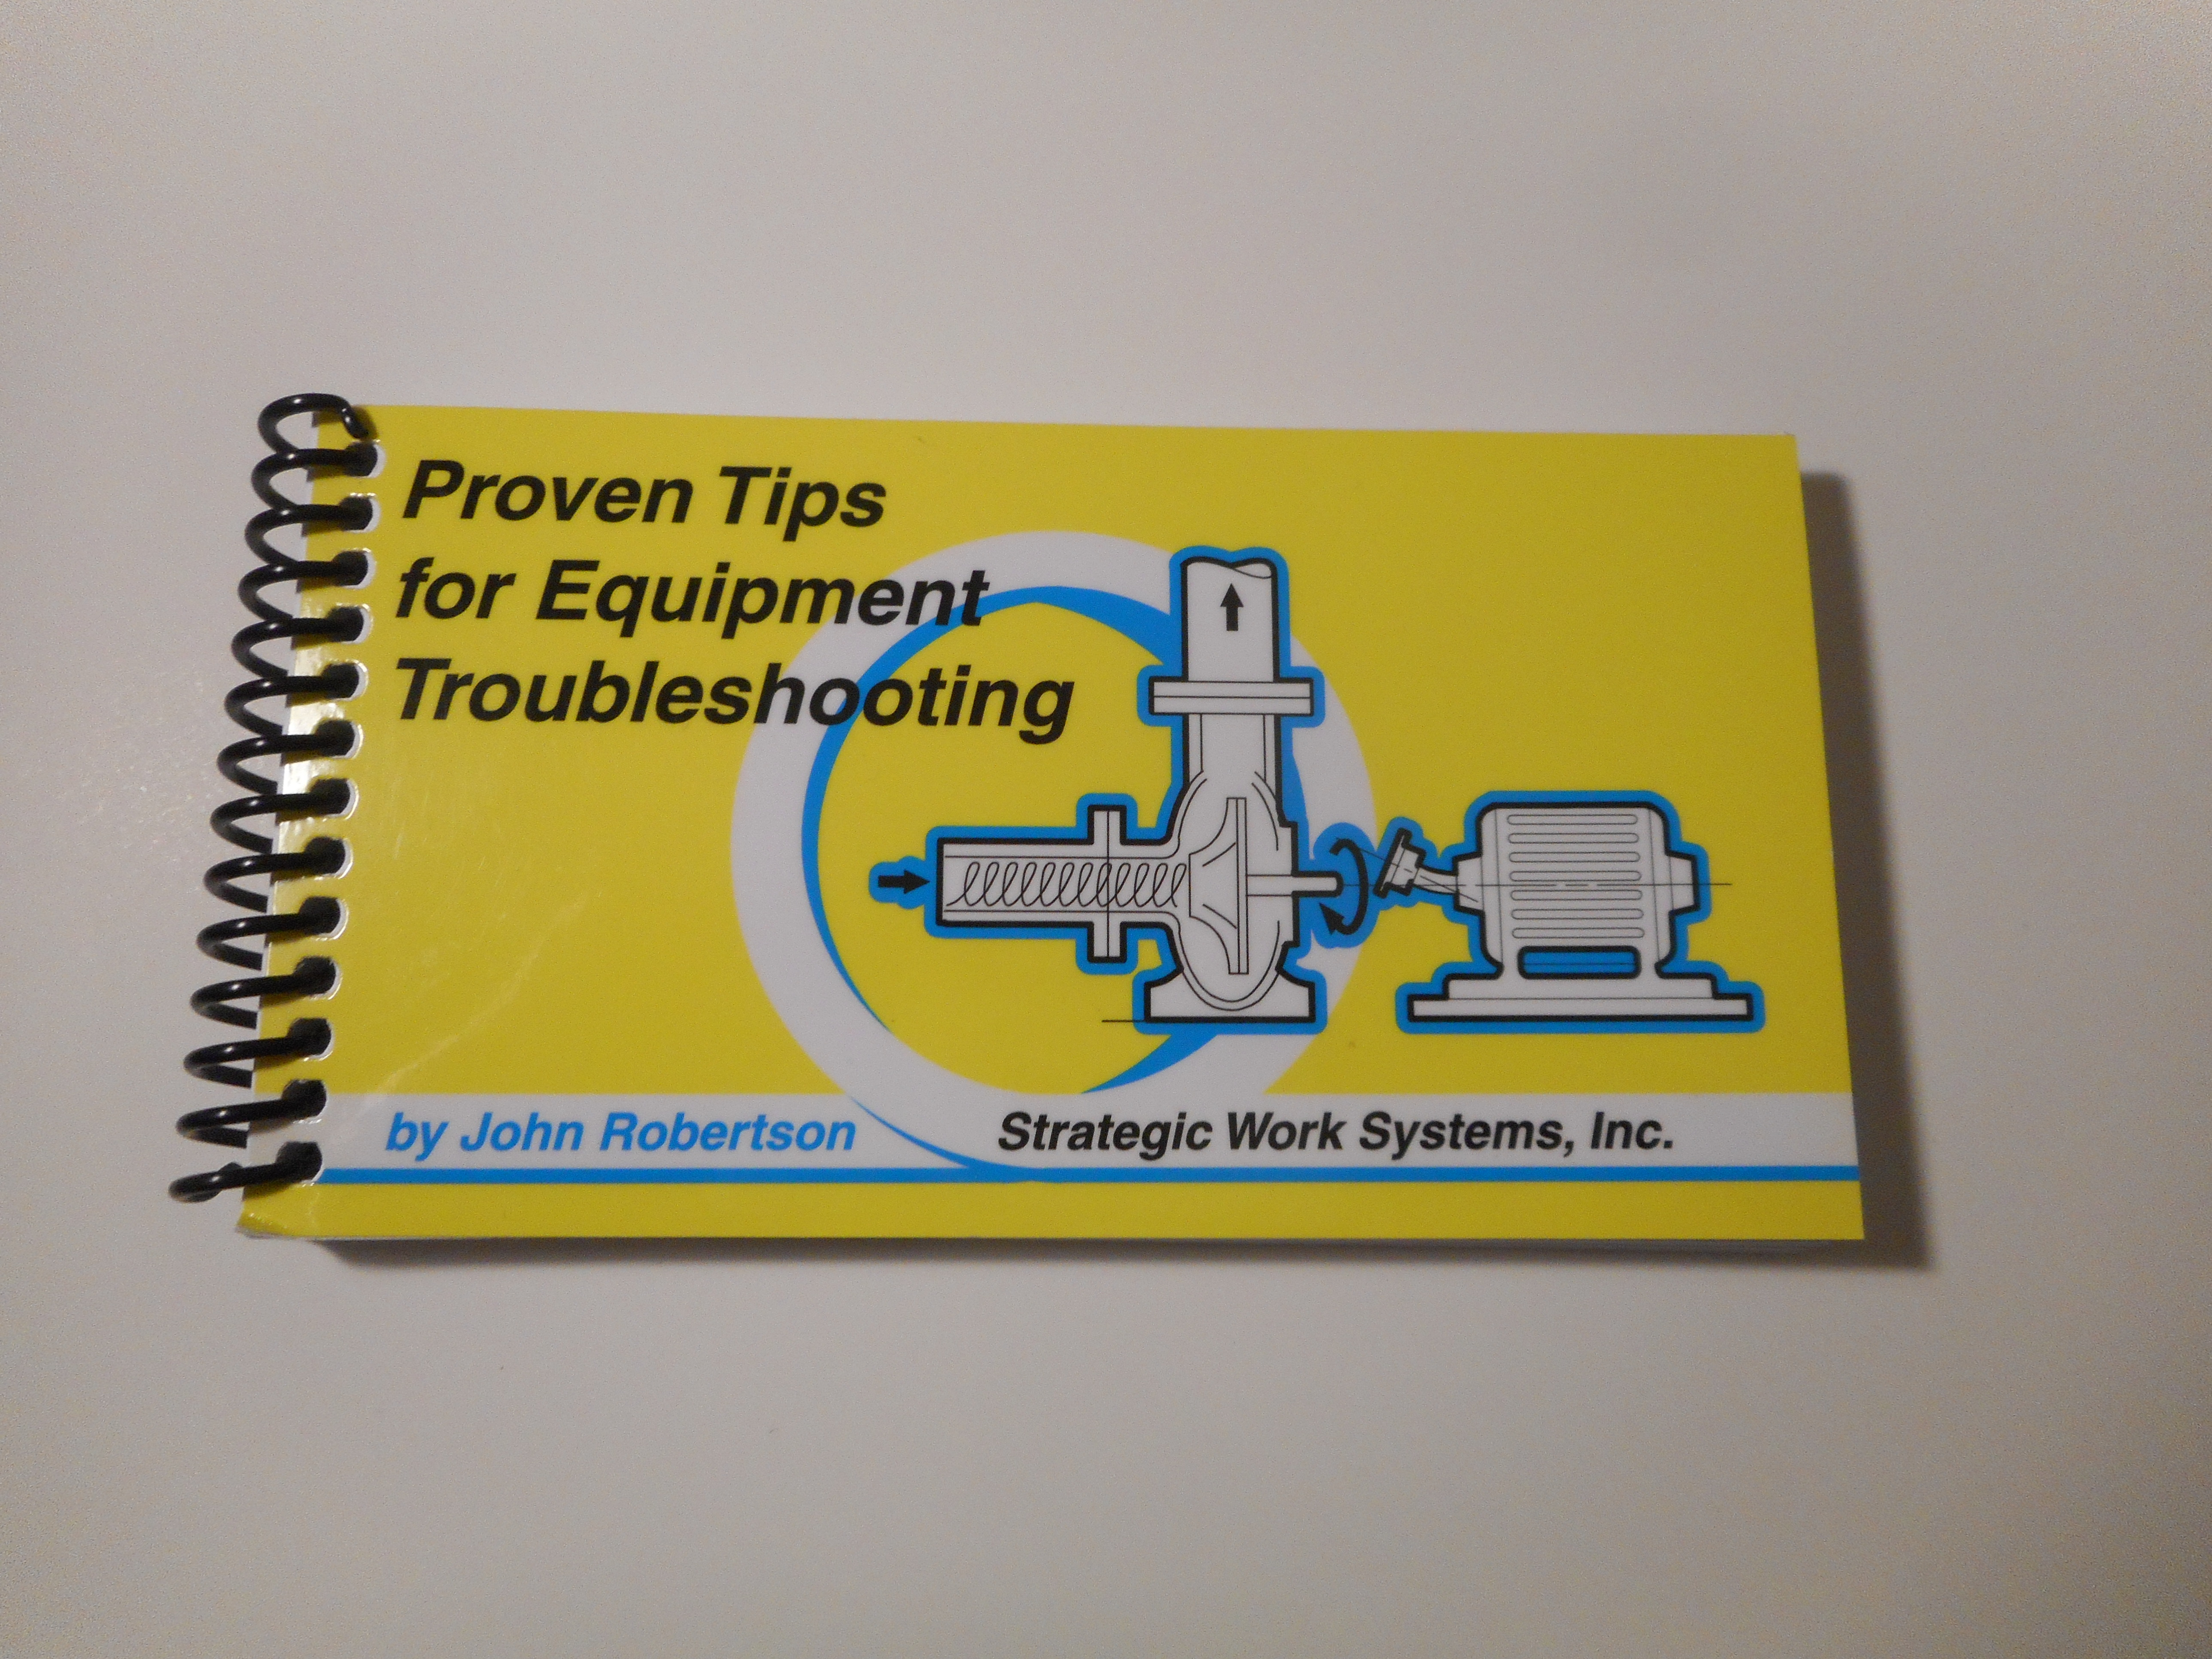 Proven Tips for Equipment Troubleshooting